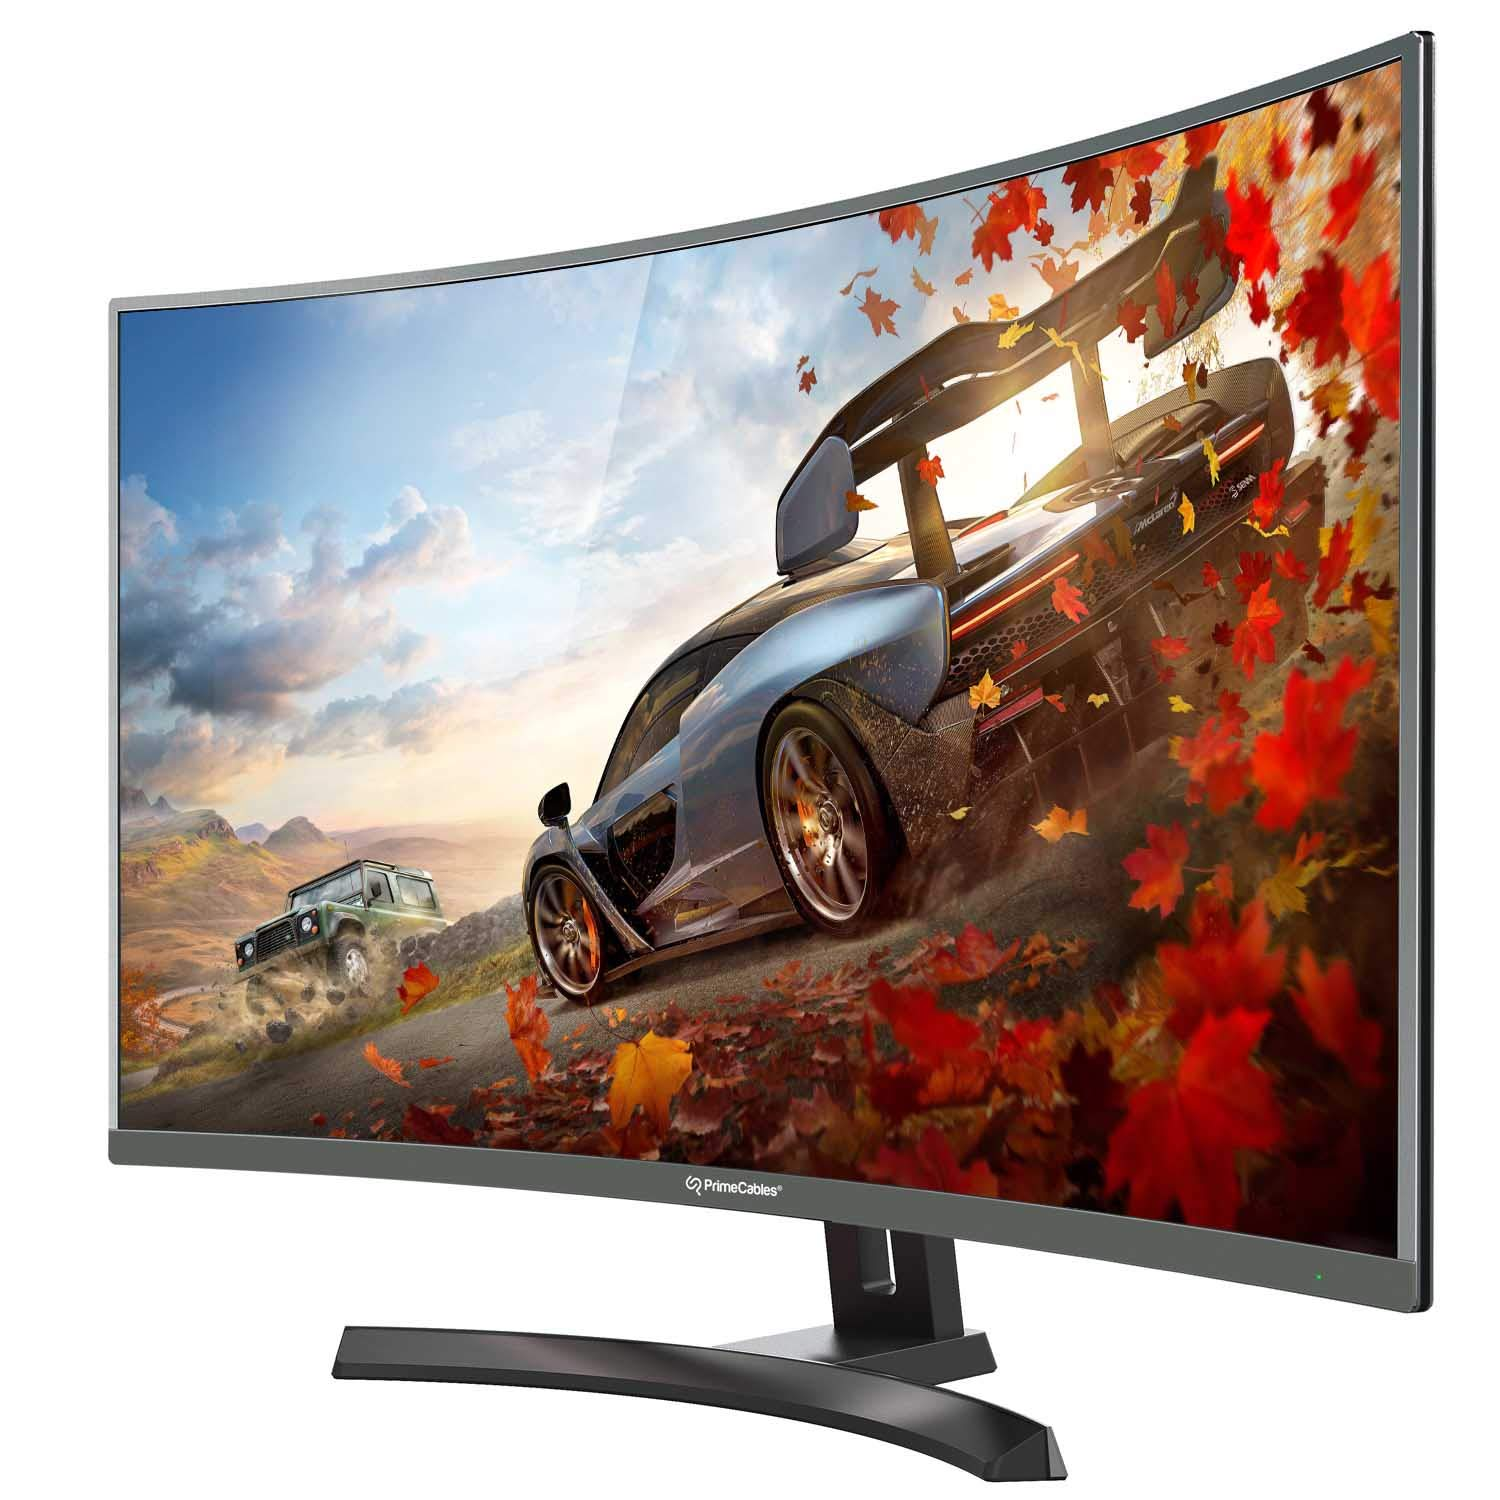 PrimeCables 144hz 1ms 27 inch 1080P FHD Super Thin Curved Gaming Monitor with Freesync(Cab PC ) Amazon Electronics